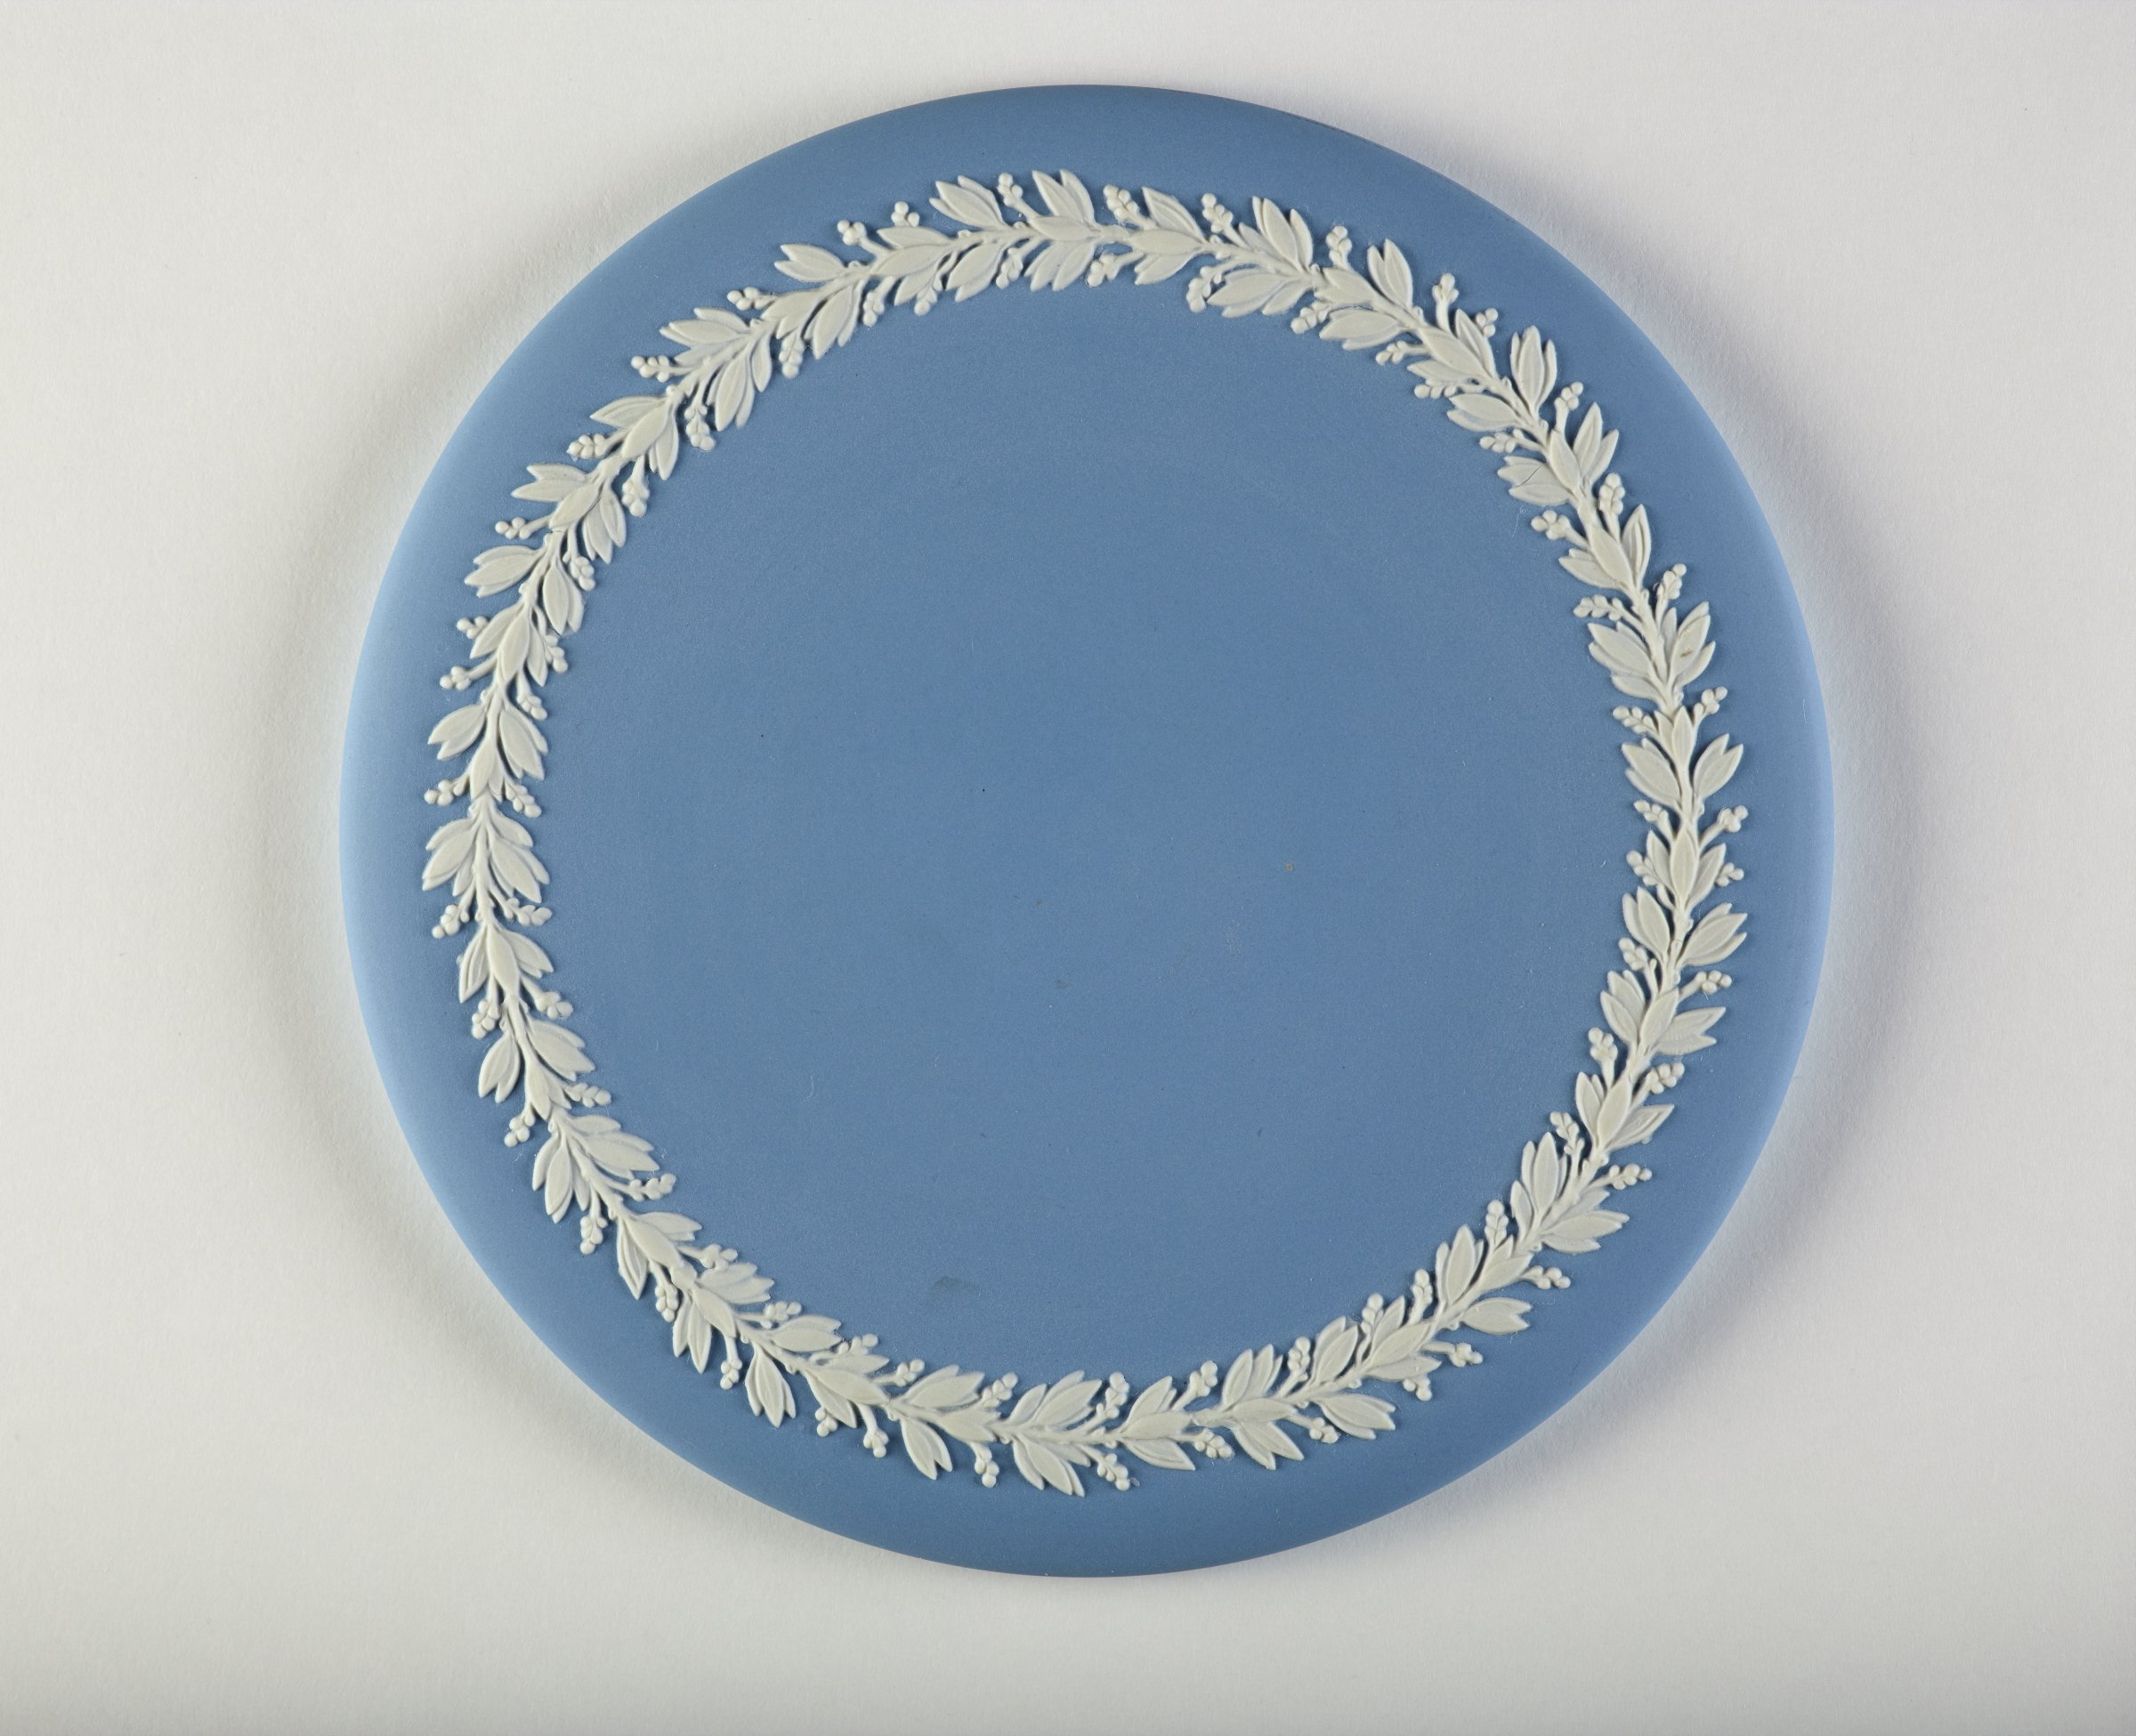 Round plaque of solid light blue jasper with border of laurel leaves and berries in white relief.